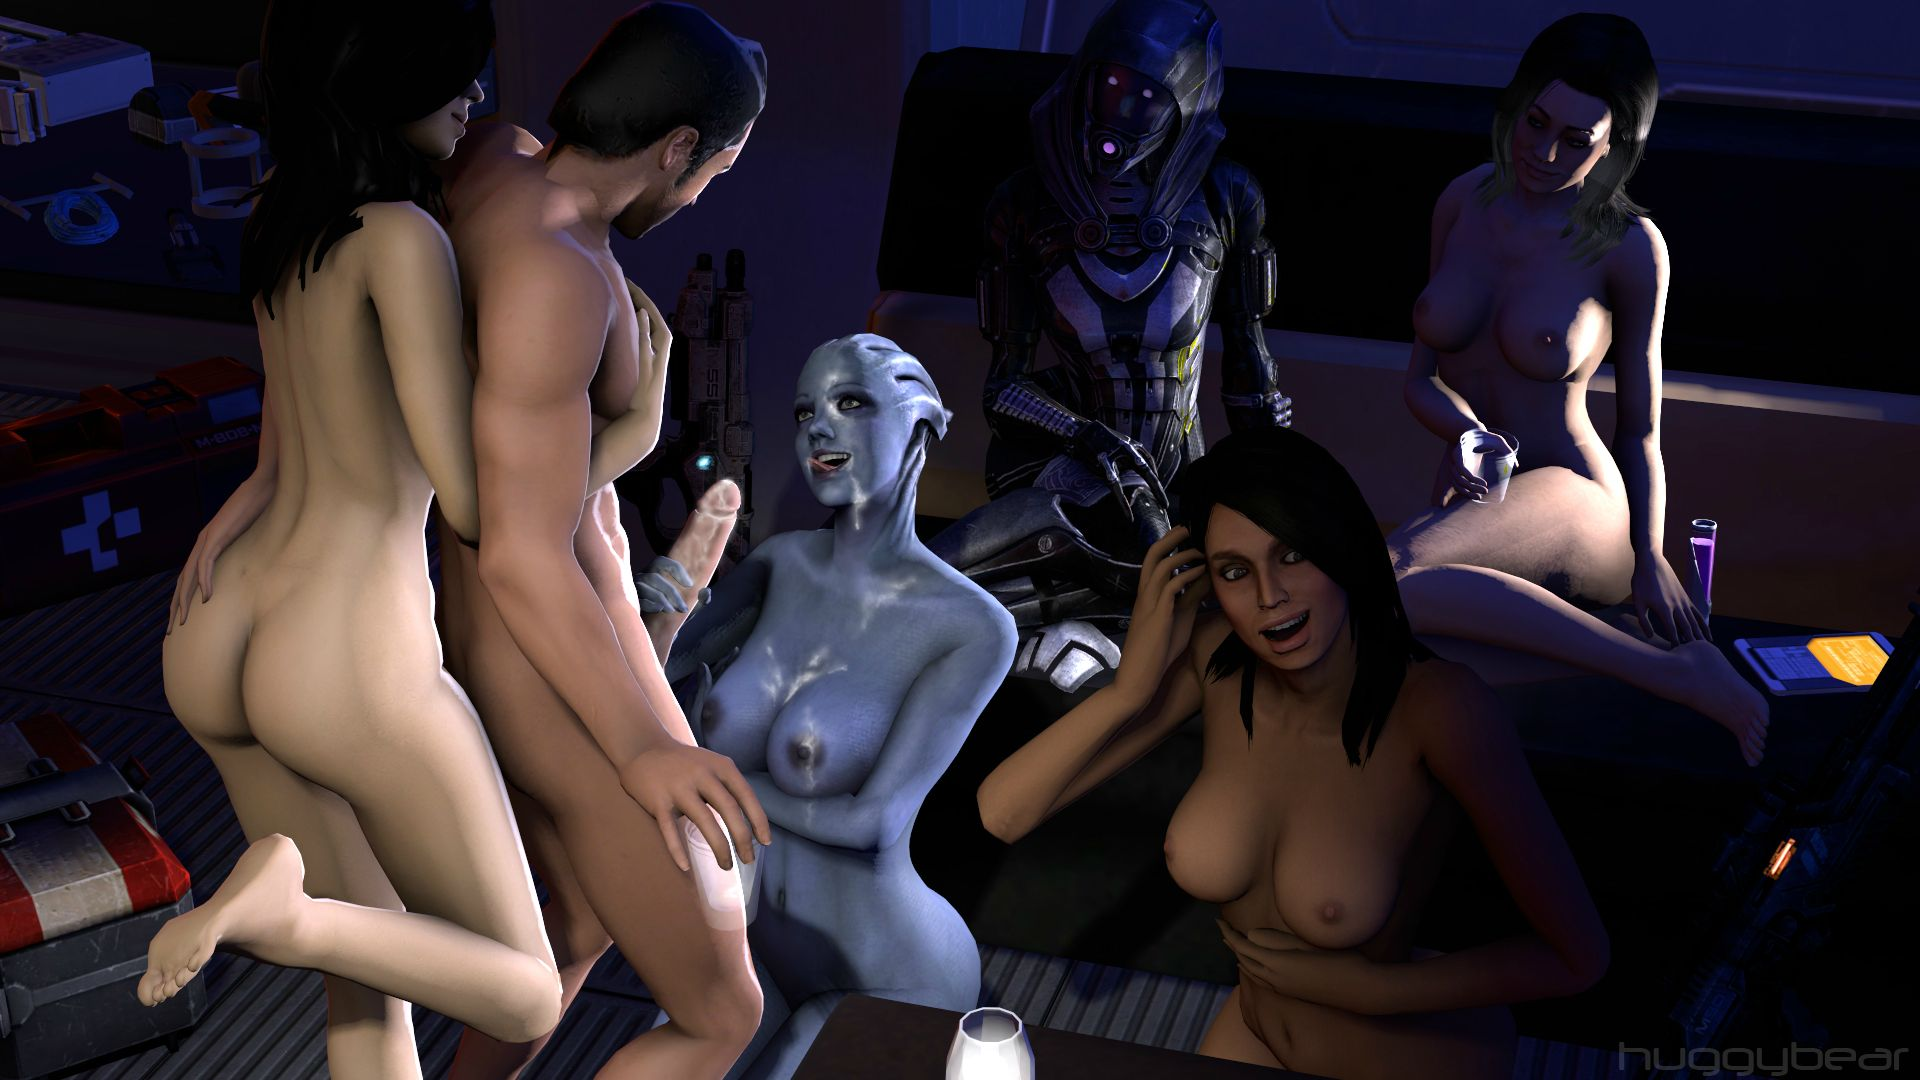 Mass effect 3 erotic naked sexy videos